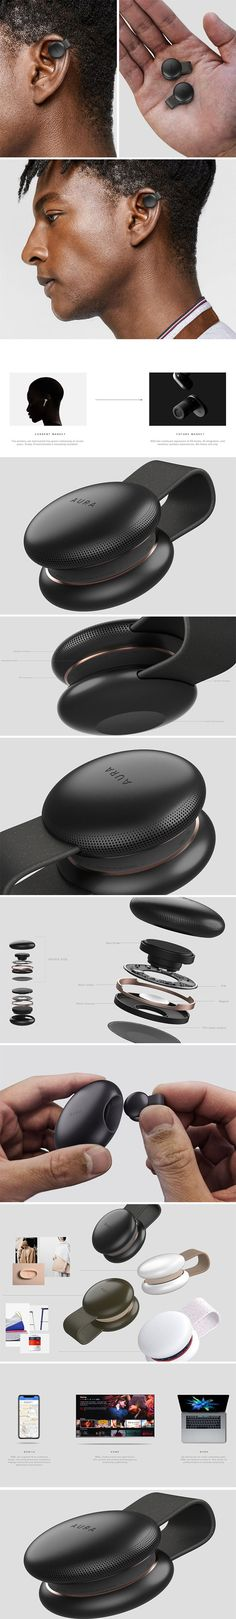 This set of conceptual earphones are the Aura PEBL, and they have been designed for a future that centers around both Augmented and Virtual Reality. Not only can they call themselves 'truly wireless', but they can also say that they are unique; rather than fitting snugly into the user's ears, they instead comfortably fit around the outside. This not only allows for an attention-grabbing design element, but also makes them far less intrusive. Cool Gadgets To Buy, Gadgets And Gizmos, New Gadgets, Electronics Gadgets, Amazing Gadgets, Clever Gadgets, Cool Technology, Technology Gadgets, Nouveaux Gadgets